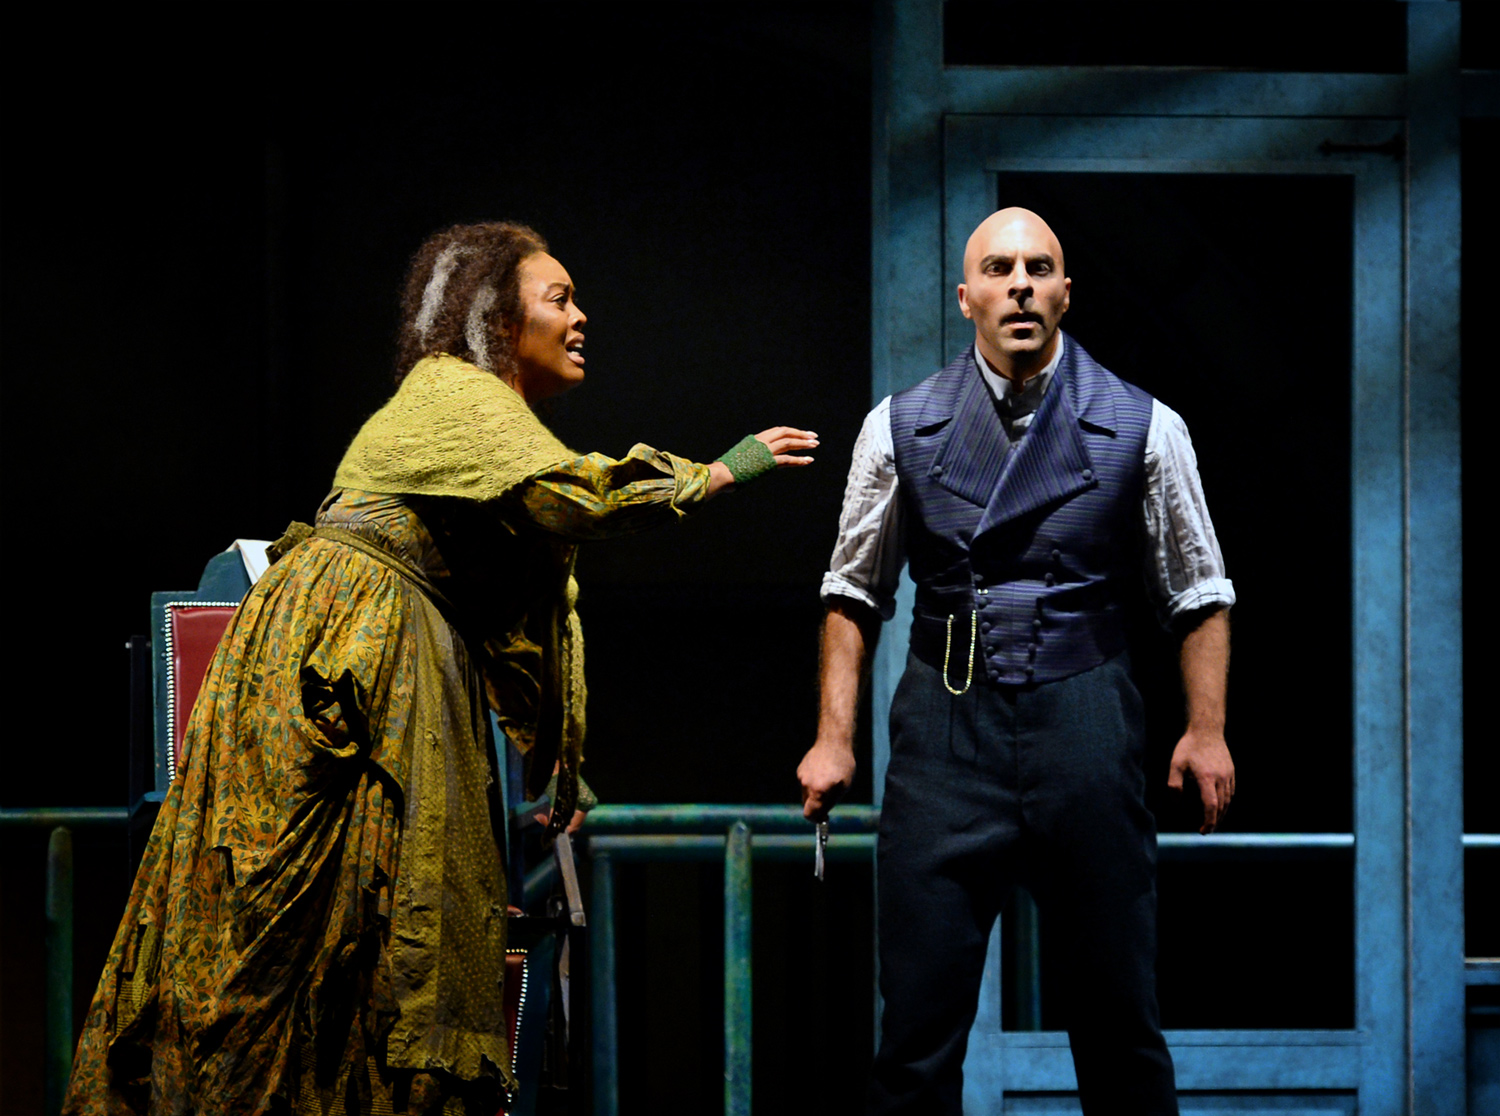 Zoie Reams as the Beggar Woman and Zachary Nelson as Sweeney Todd